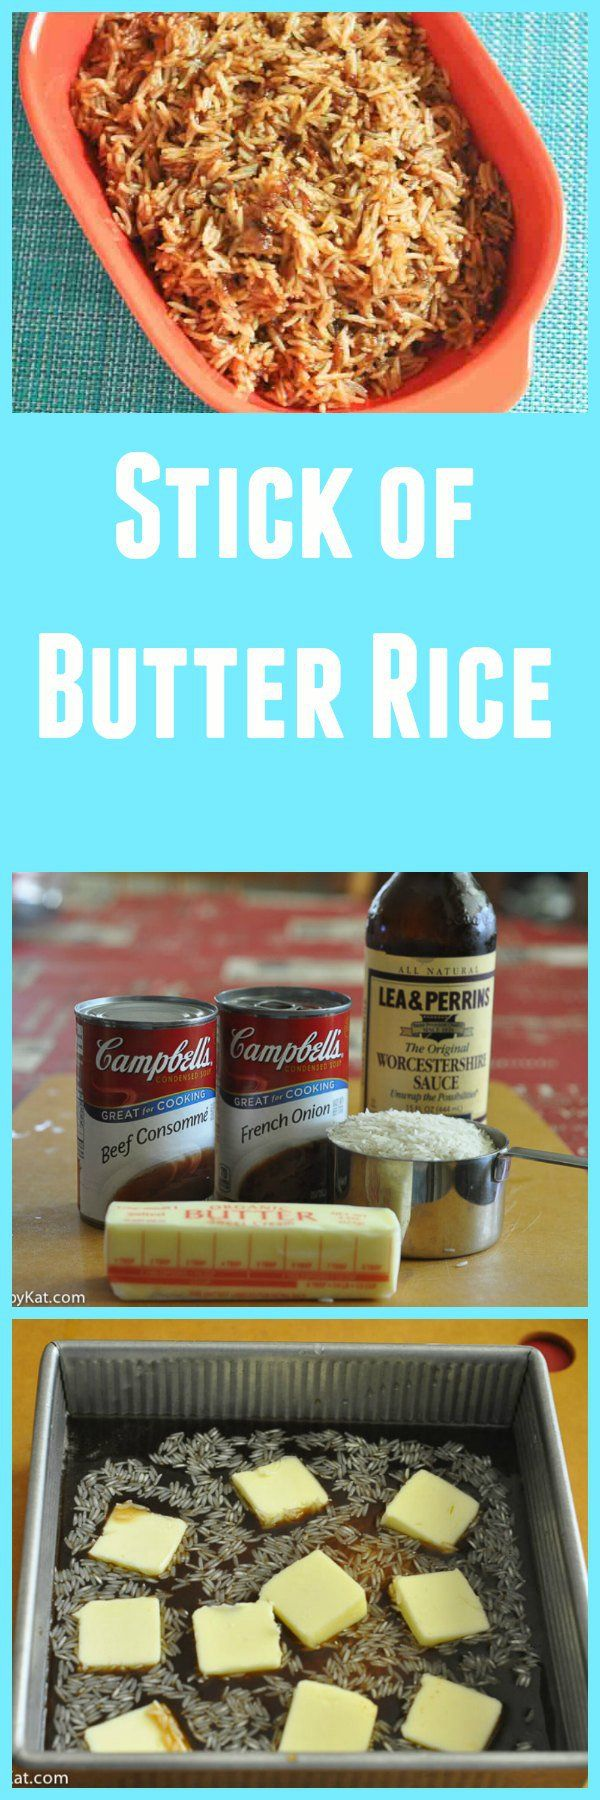 Looking for an easy side dish? This stick of butter rice adds one special ingredient to make this dish extra tasty. Check out this secret.